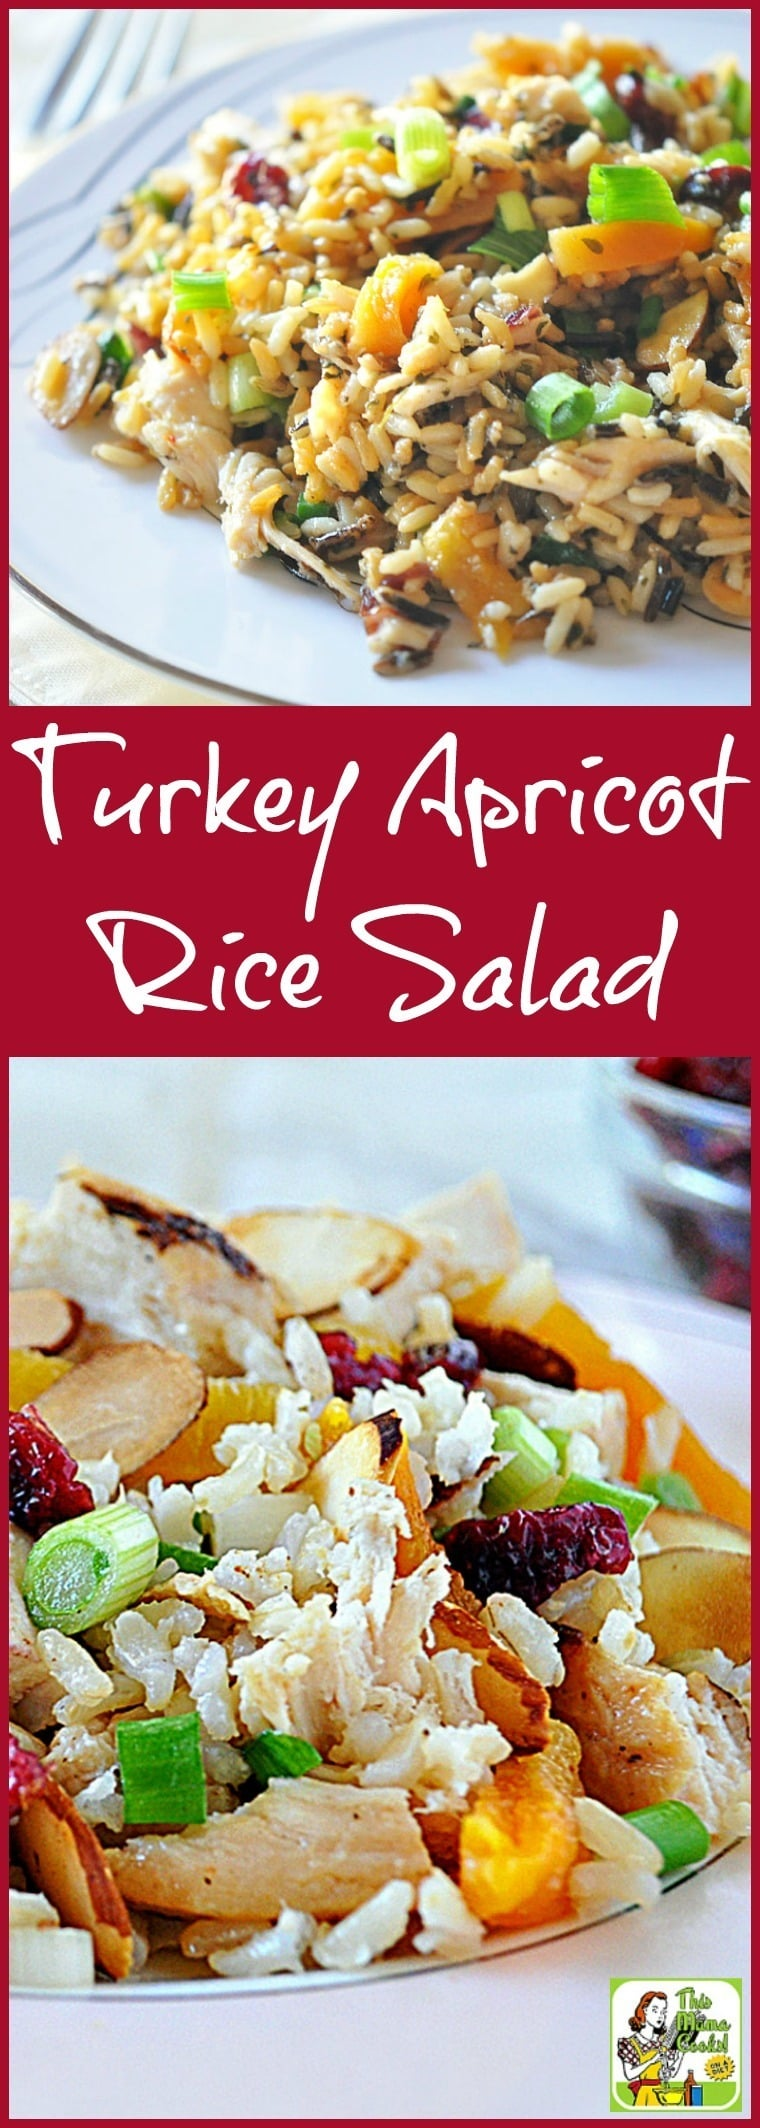 If you do Thanksgiving leftovers, you'll love easy Thanksgiving leftover recipes like this Turkey Apricot Rice Salad! It's a gluten free salad recipe that's a great way to use Thanksgiving leftovers. It's also diabetic friendly. #salad #turkey #thanksgiving #apricot #rice #diabeticfriendly #healthy #healthyrecipe #leftovers #thanksgivingleftovers